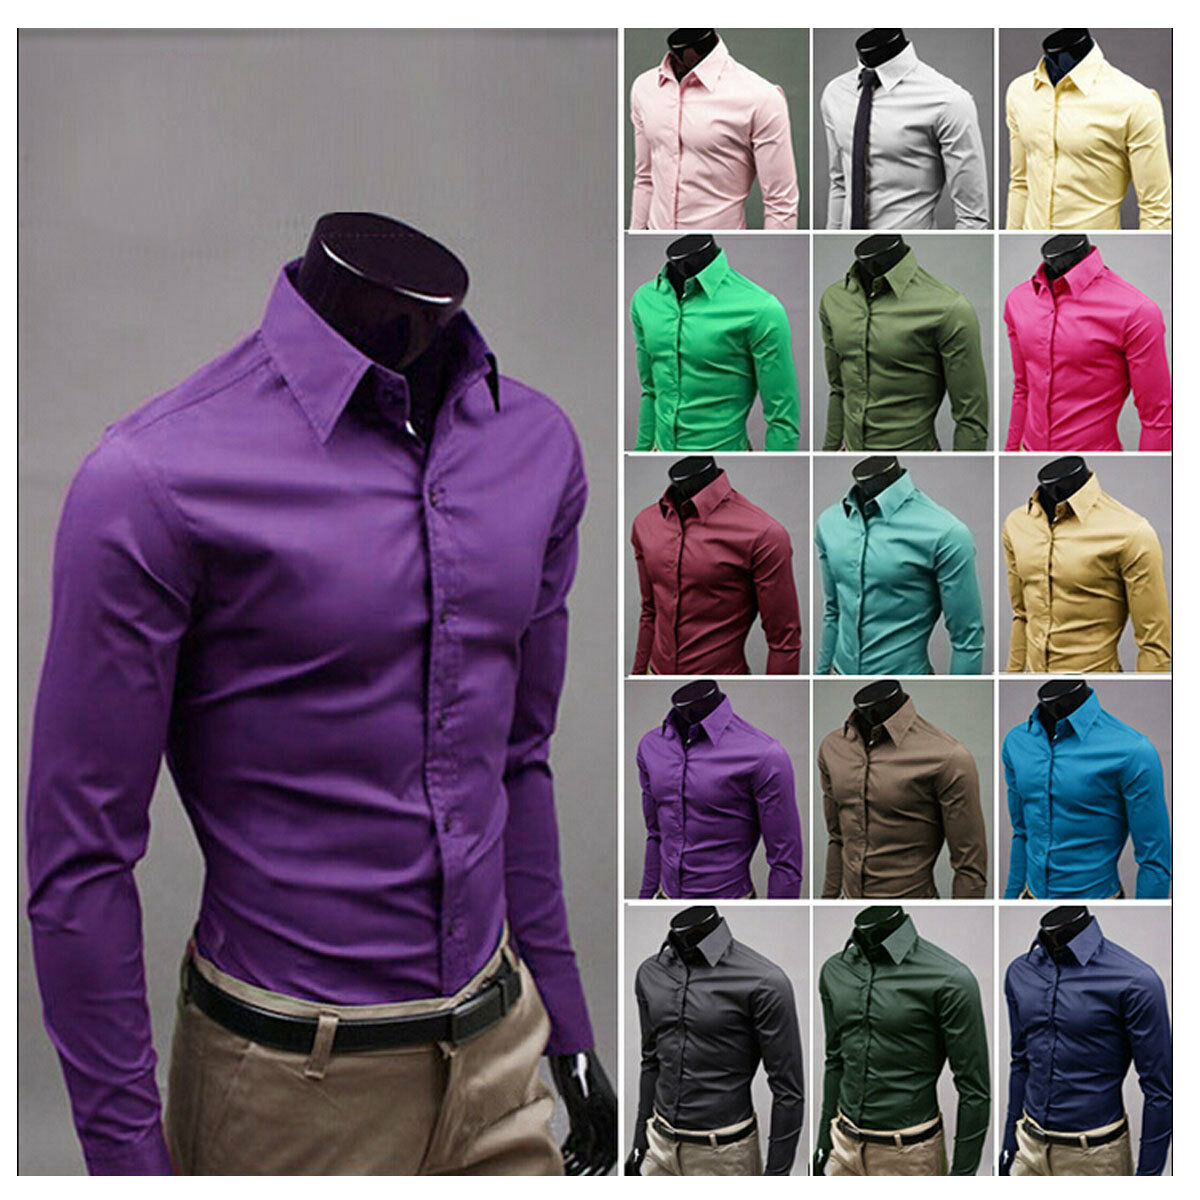 $9.13 - Fashion Mens Luxury Stylish Casual Dress Slim Fit T-Shirts Casual Long Sleeve US